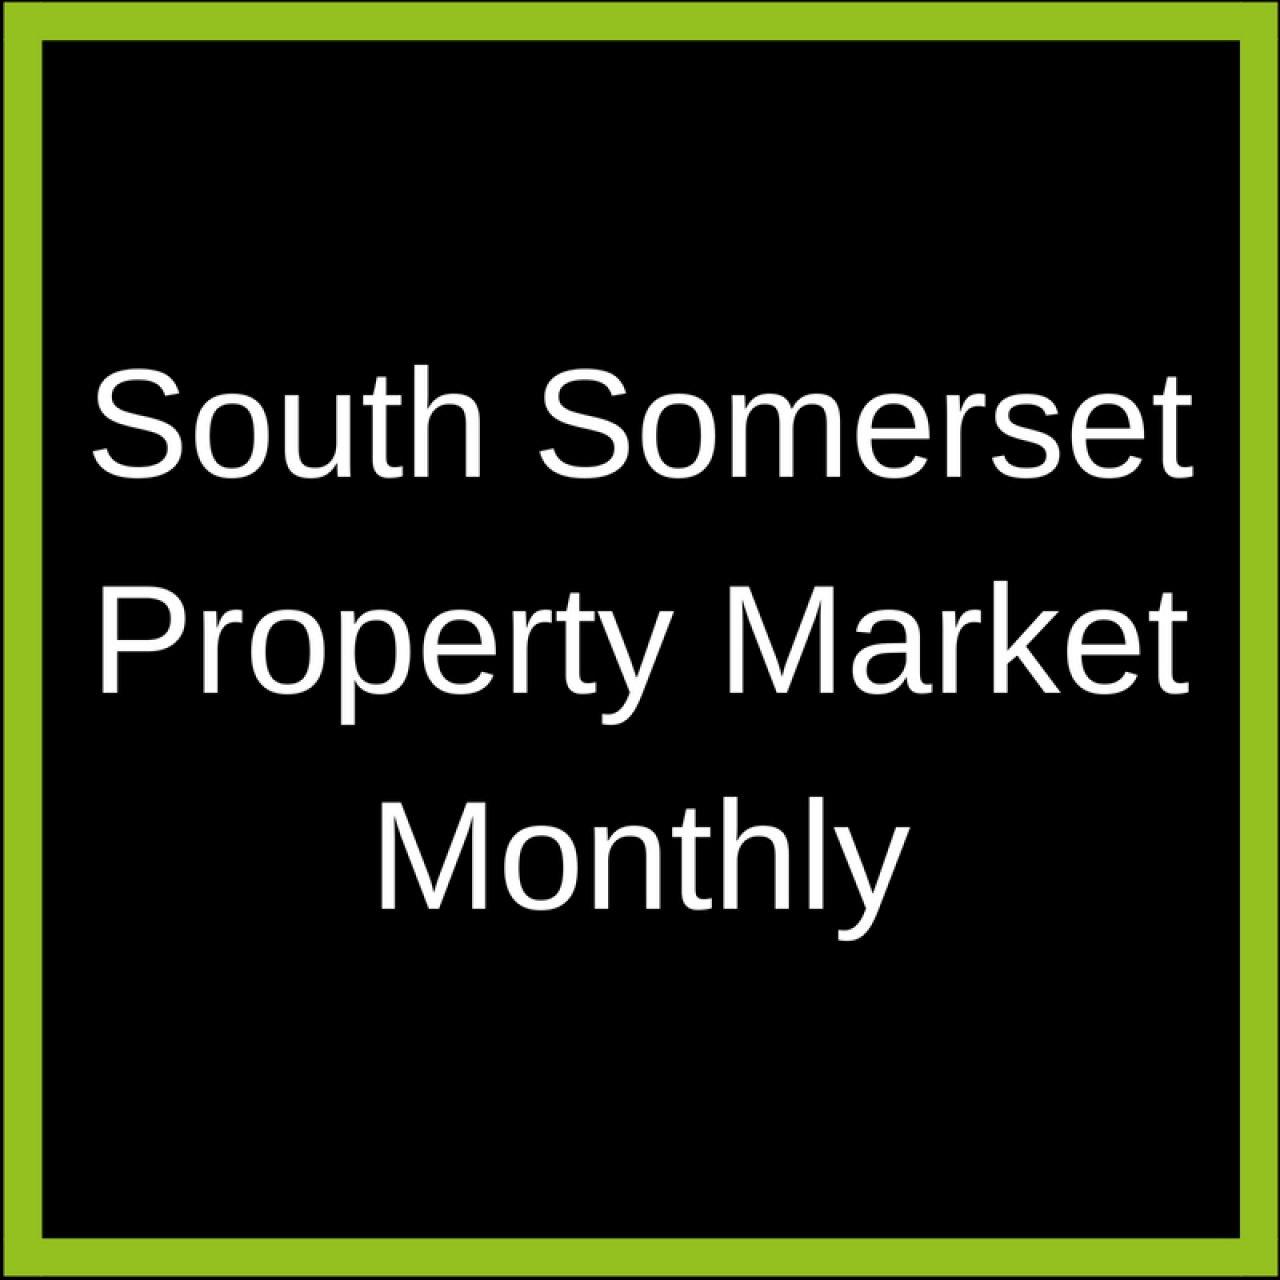 >How many houses sold in South Somerset in July?